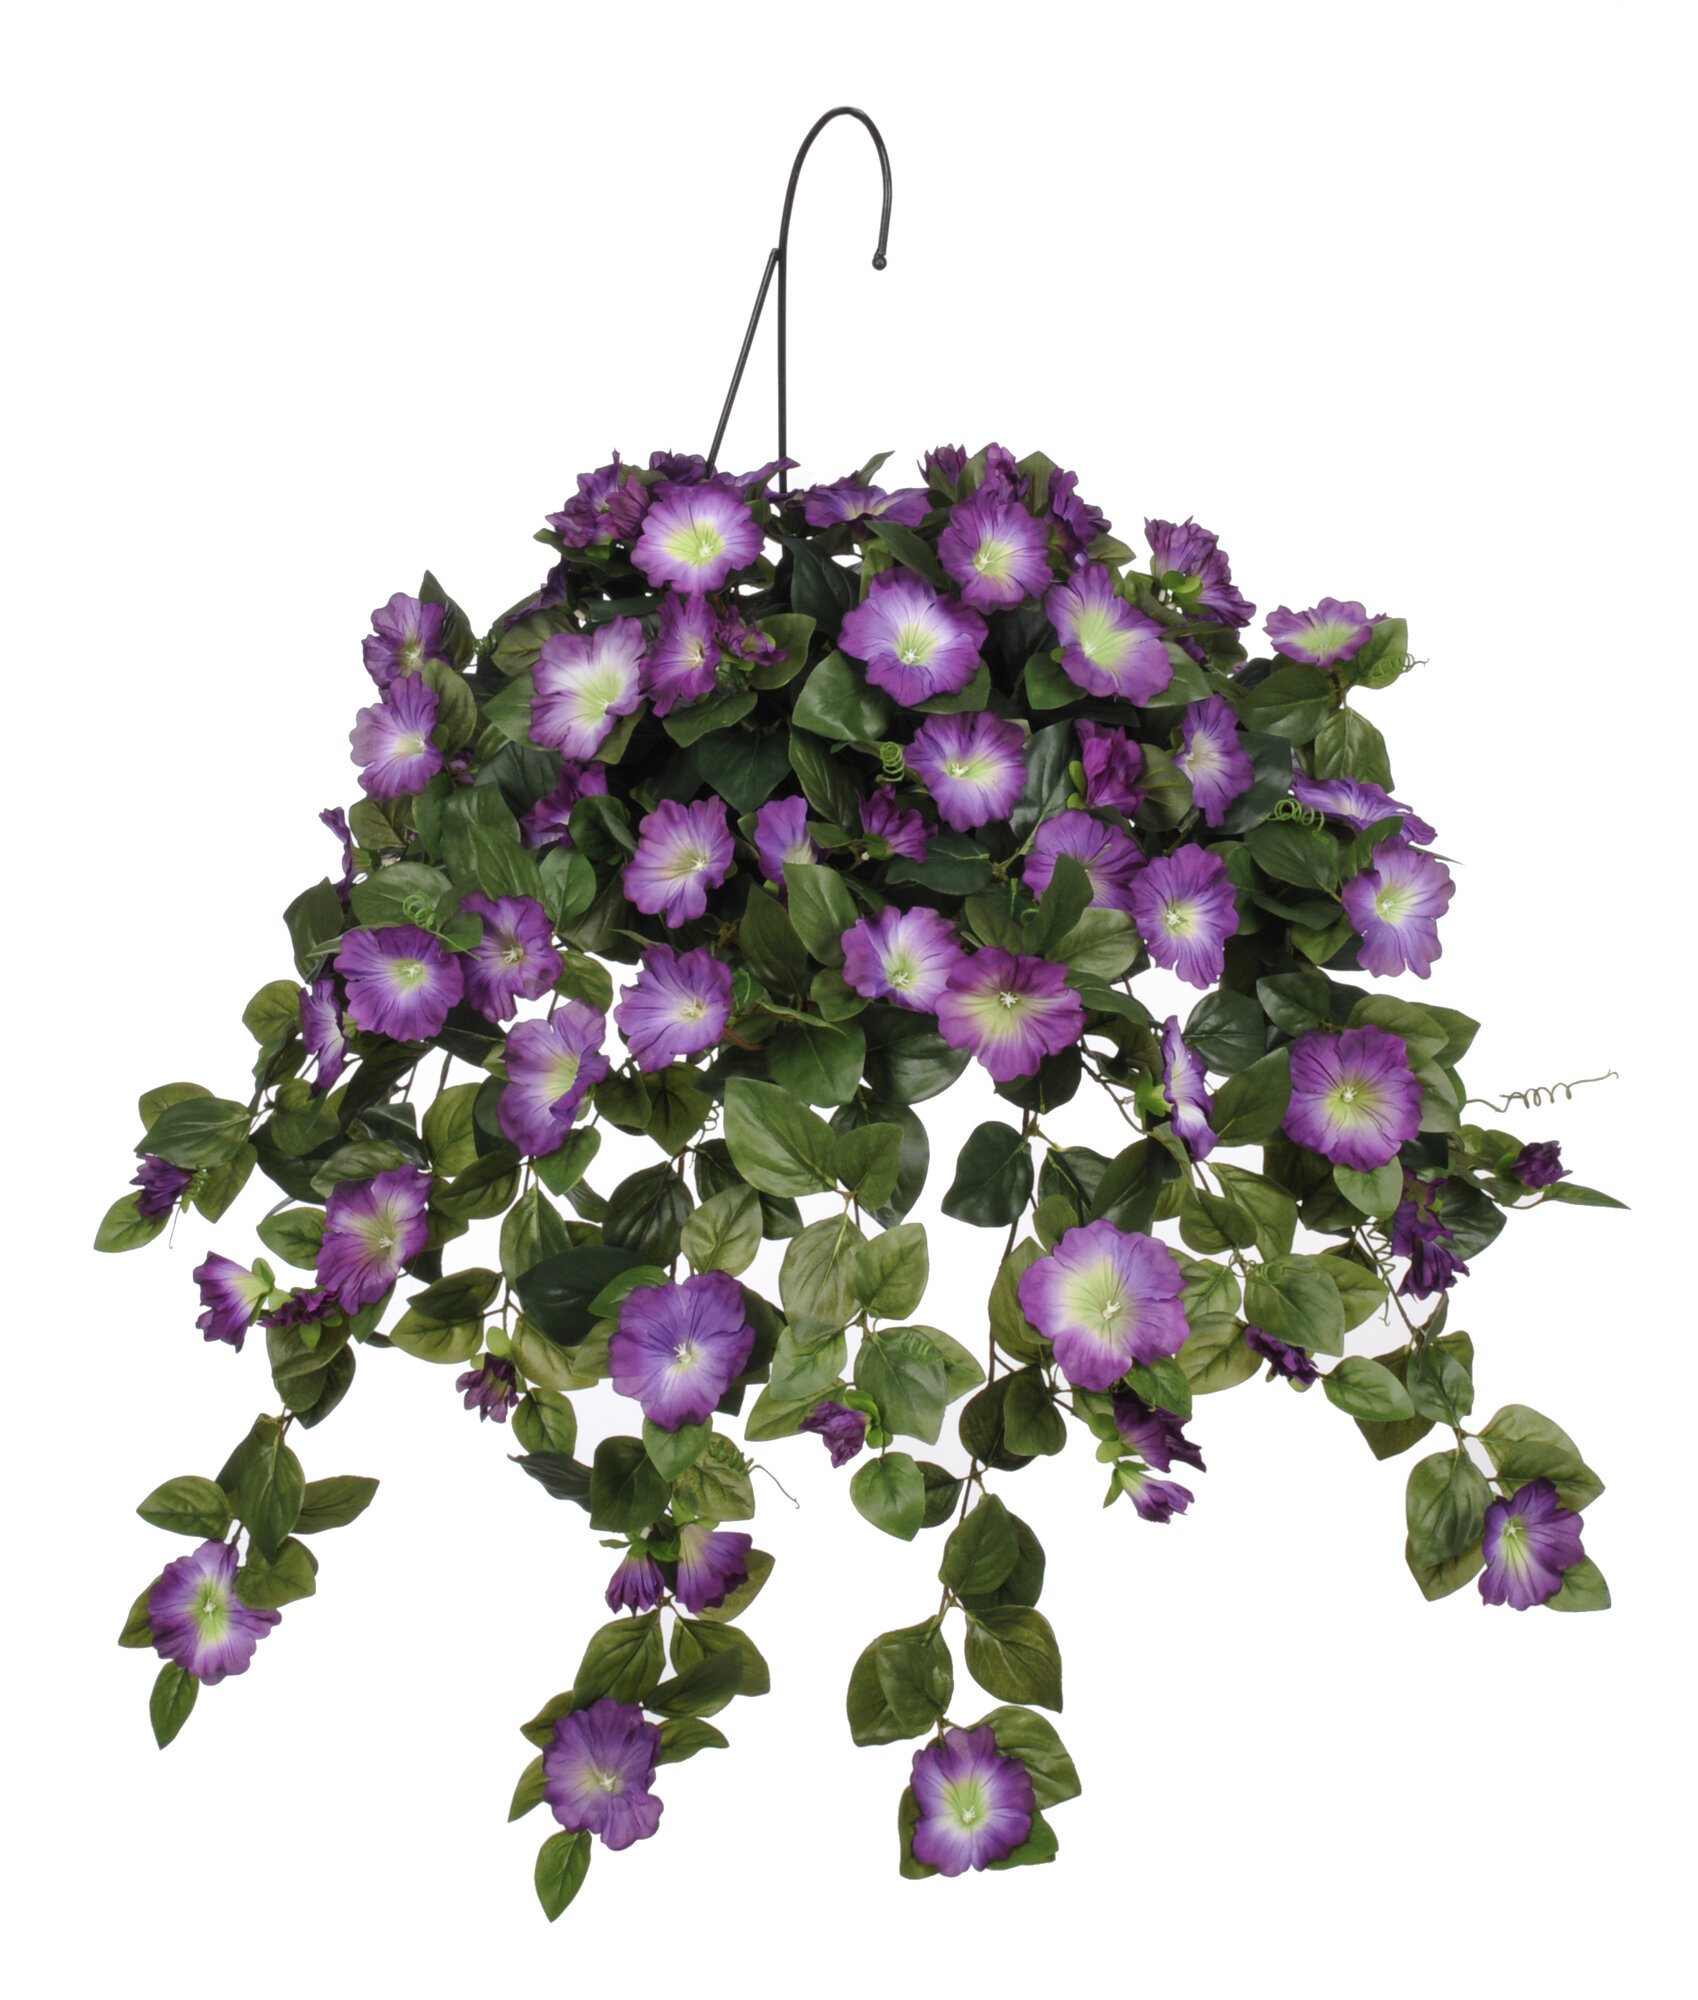 house of silk flowers inc artificial petunia hanging plant in basket ebay. Black Bedroom Furniture Sets. Home Design Ideas